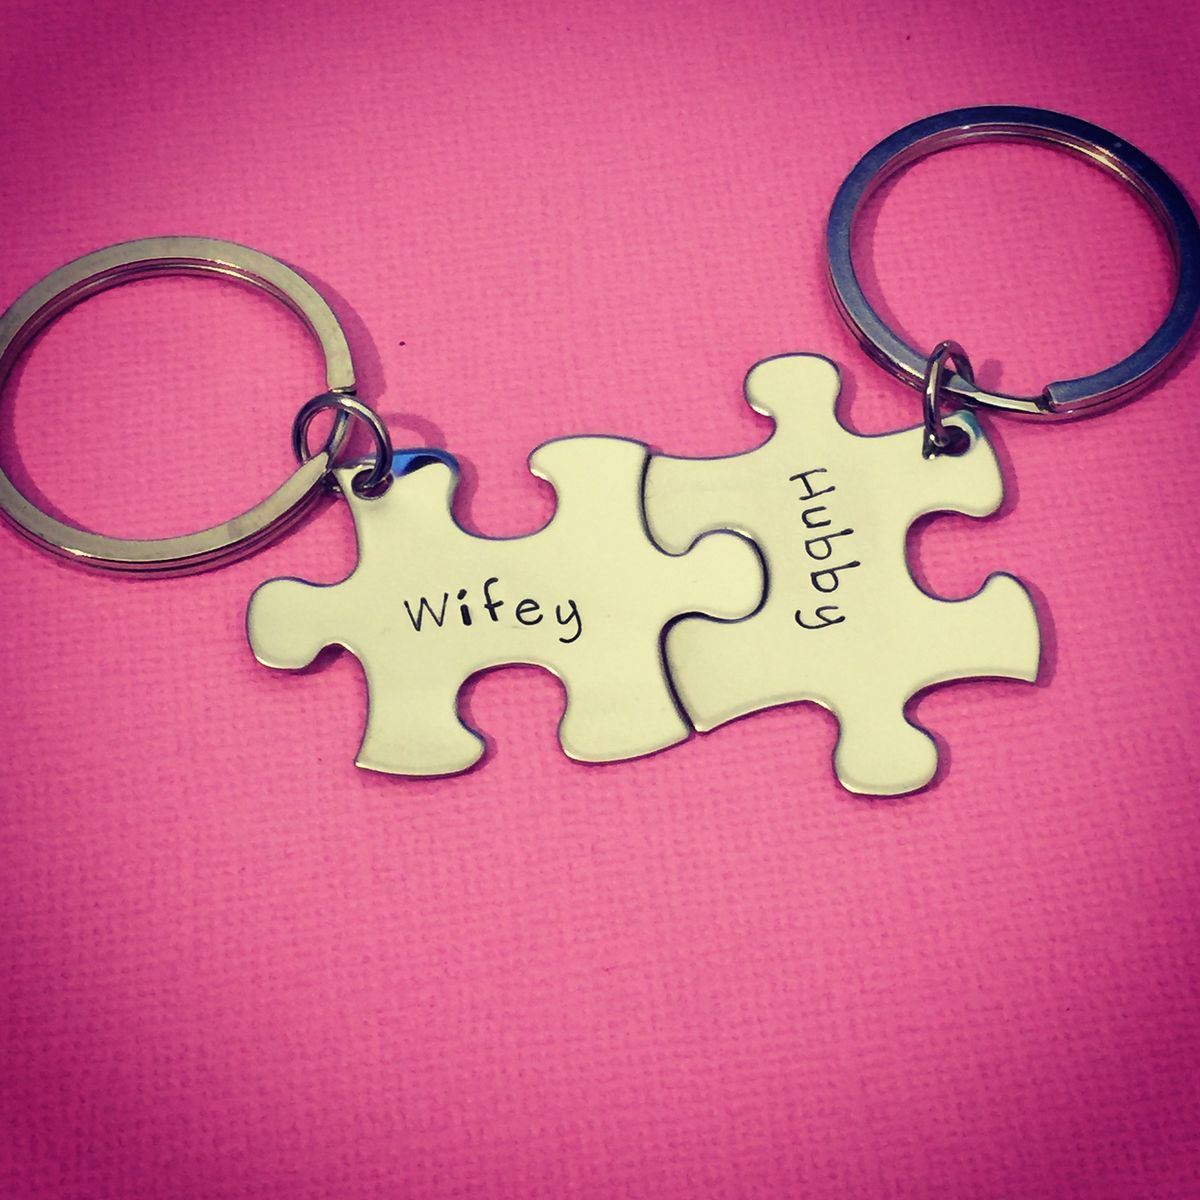 Wifey Hubby Keychains, Couples Keychains, Husband Wife Gift - product images  of